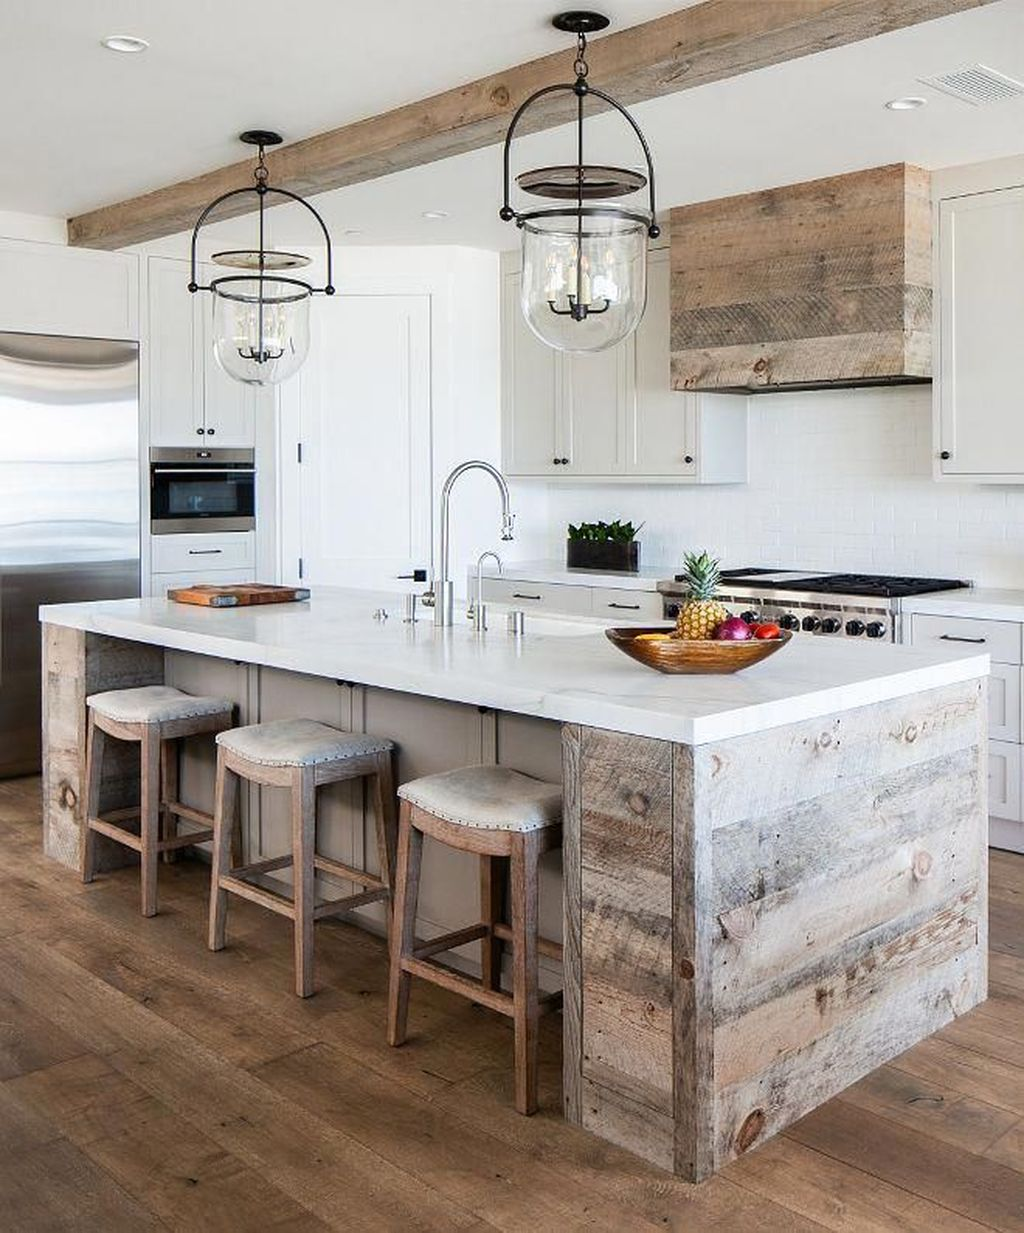 Awesome Rustic Kitchen Design Ideas 33